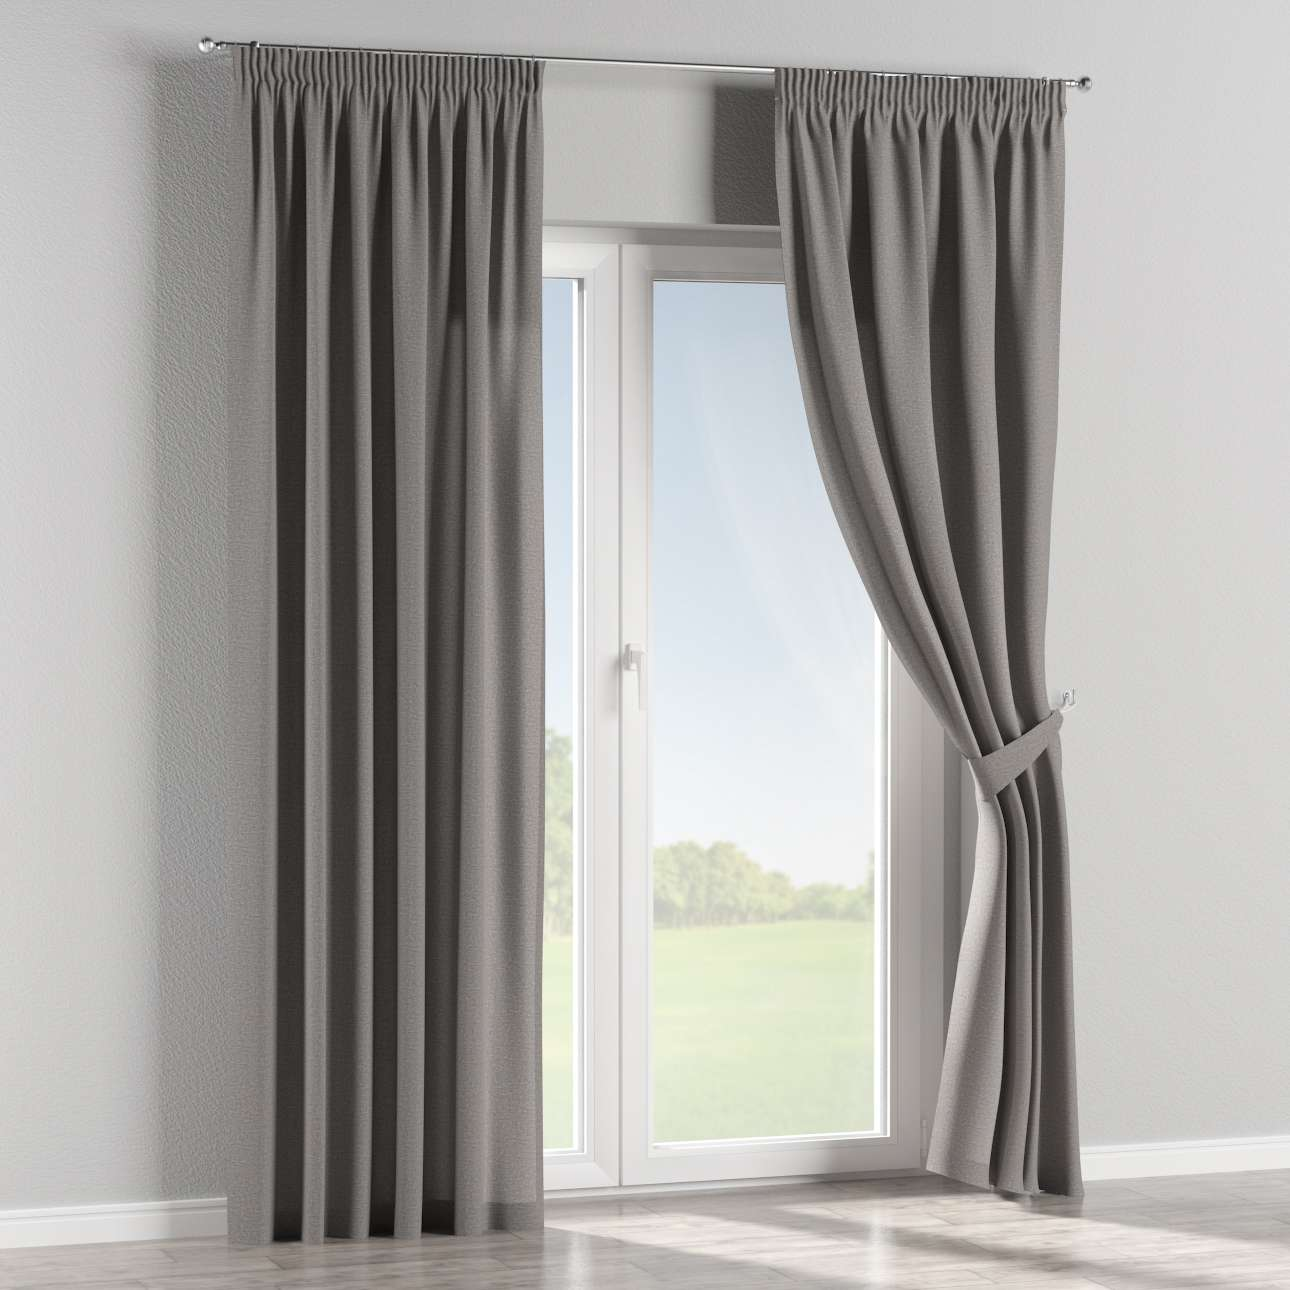 Pencil pleat curtains in collection Edinburgh, fabric: 115-81